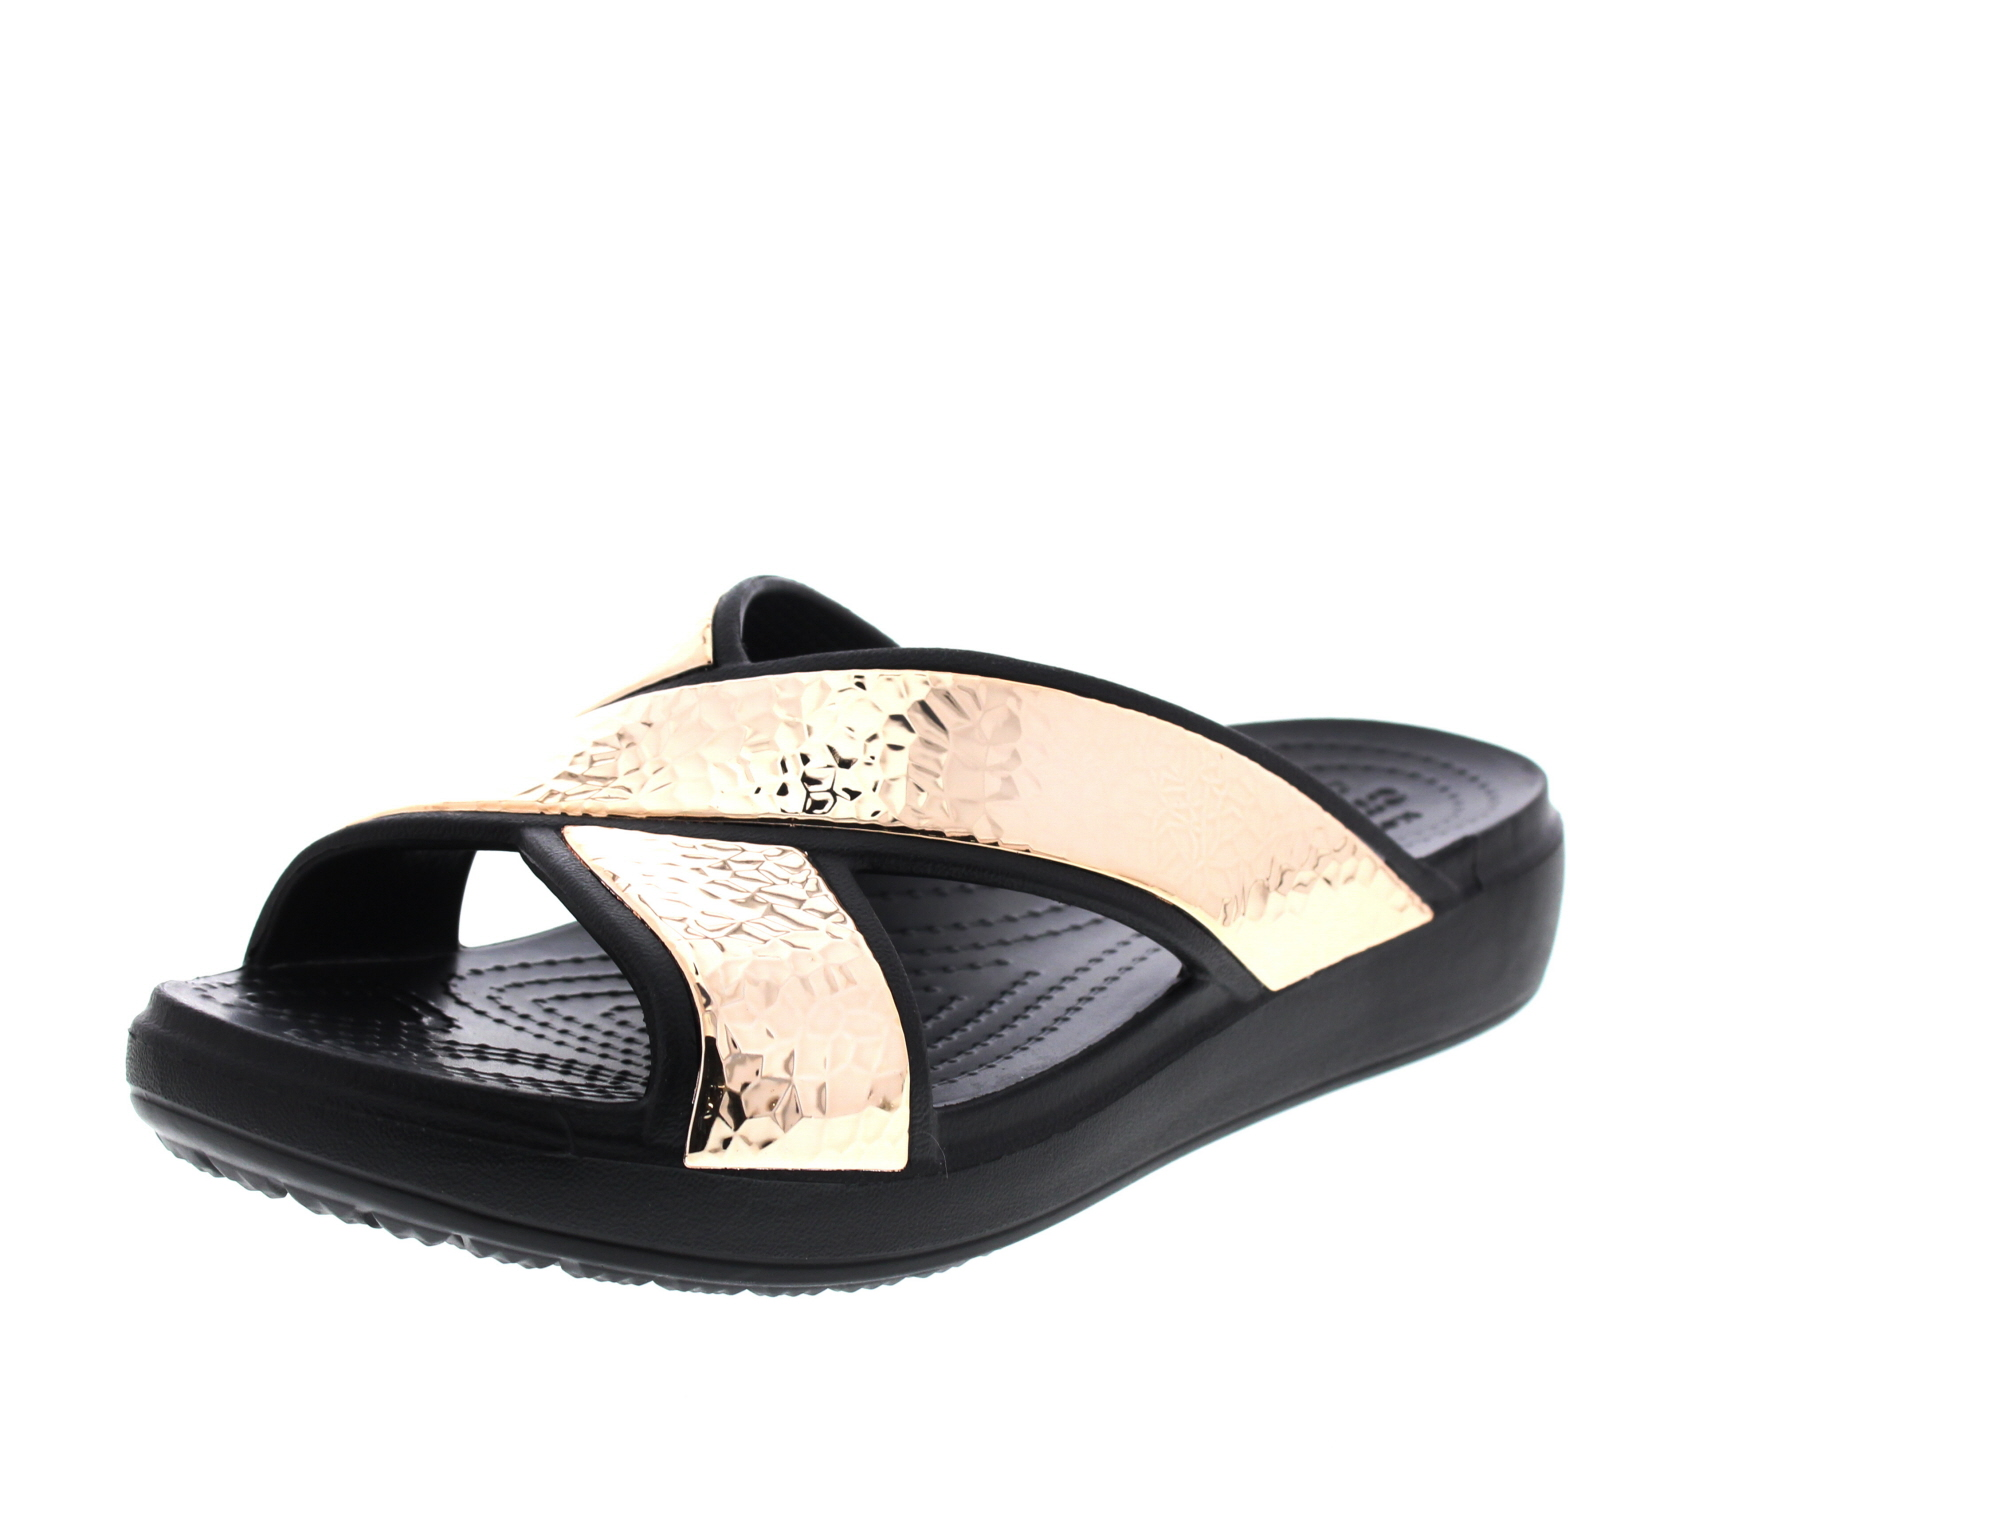 CROCS - SLOANE HAMMERD XStrap Slide - black rose gold0-6603